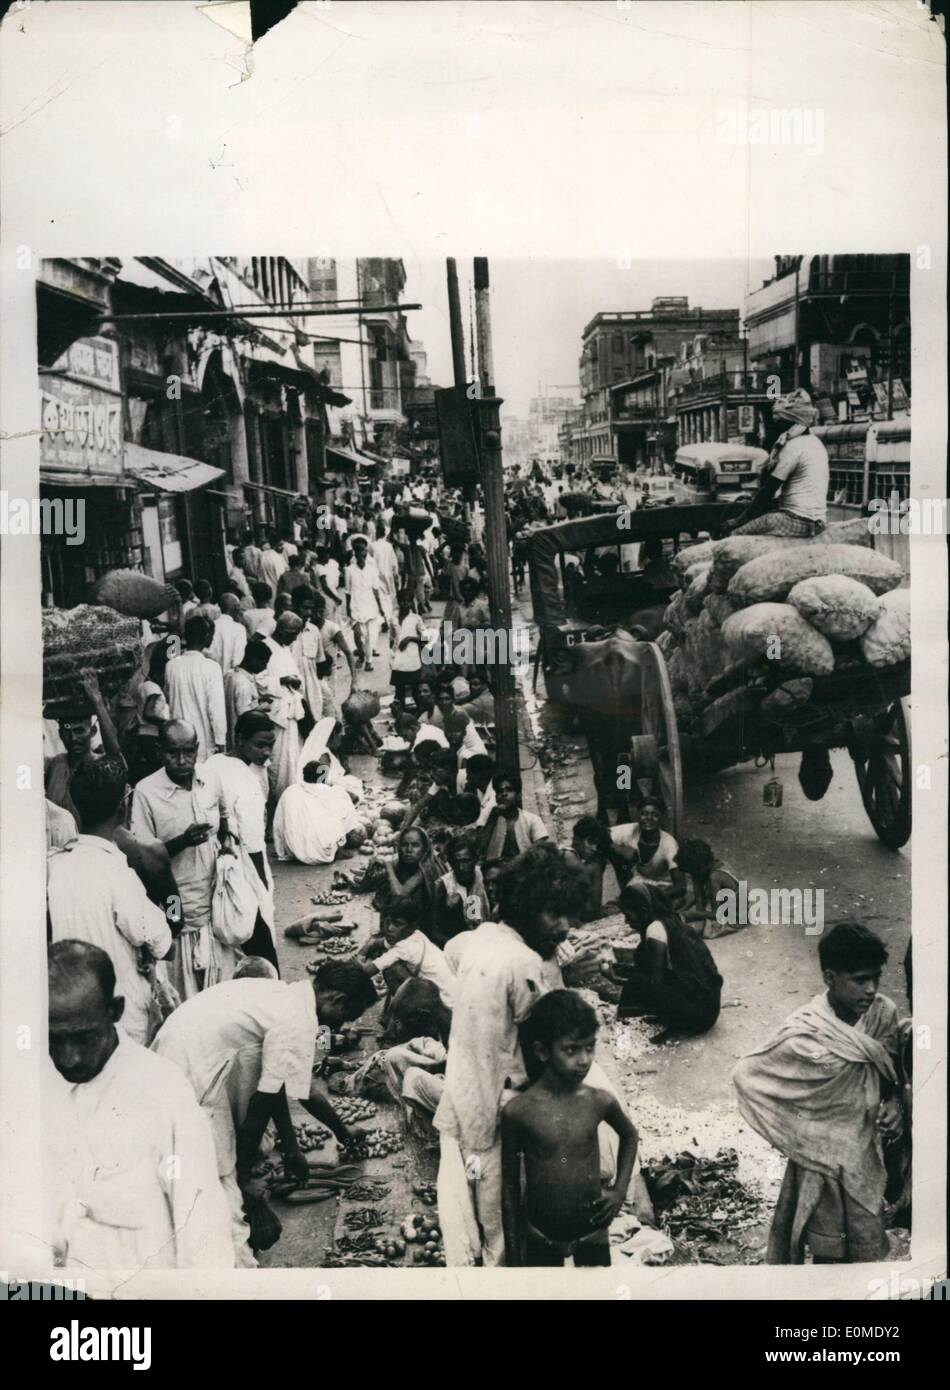 Jan. 01, 1955 - Wholesale retailing in Calcutta: Calcutta today is largely a city of congestion and overcrowding but nowhere so - Stock Image